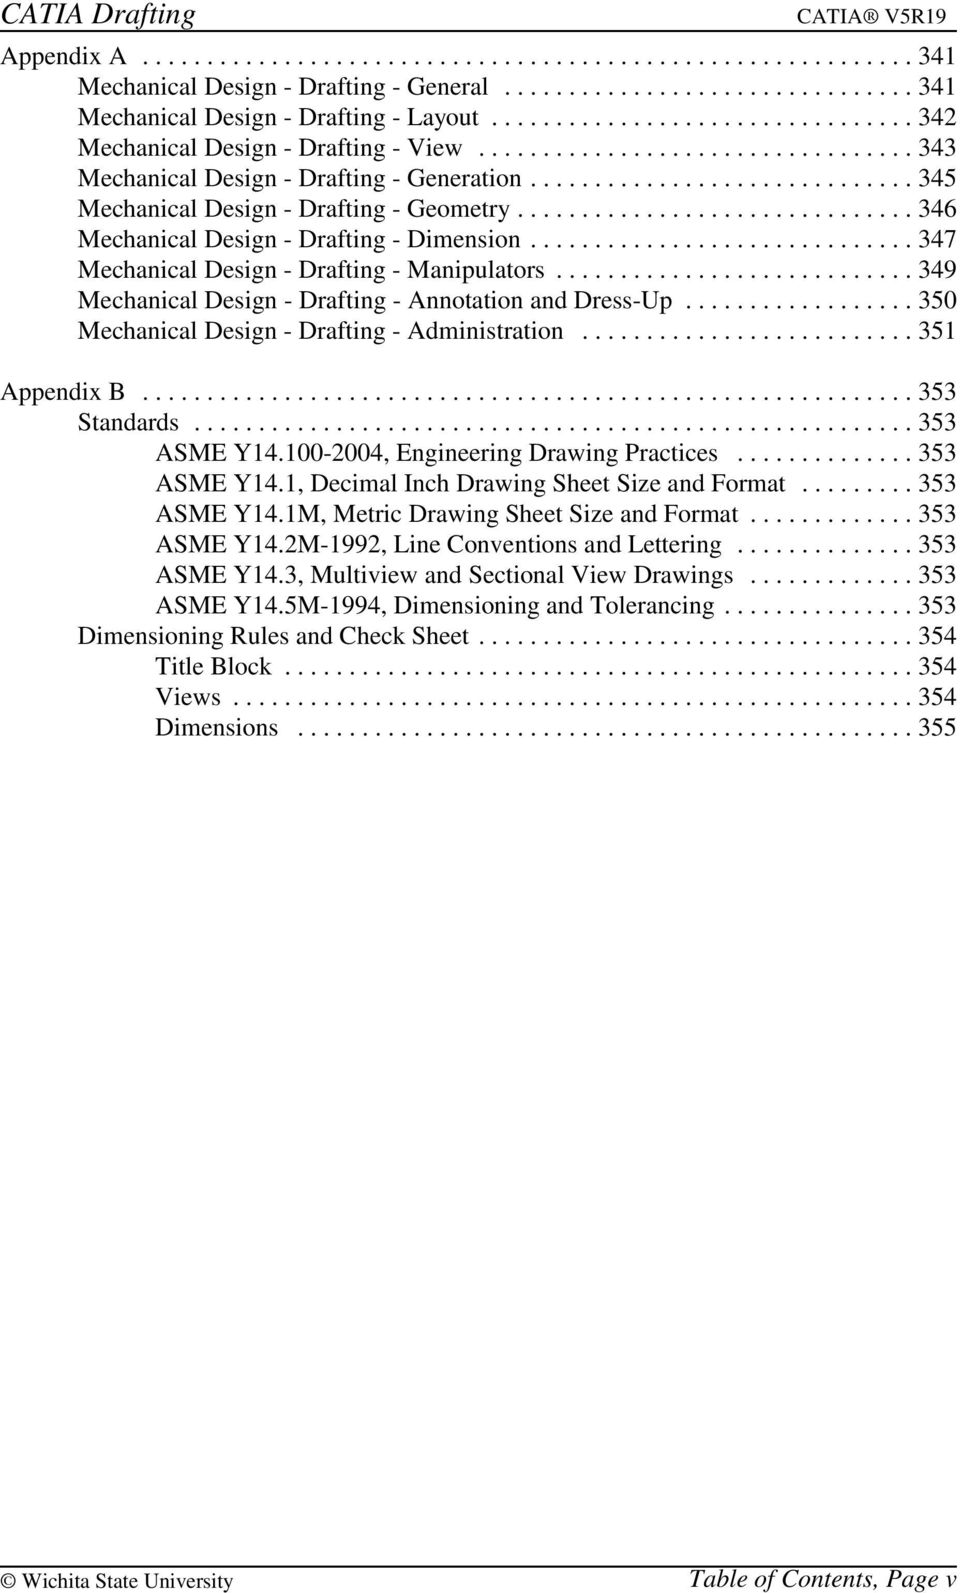 CATIA Drafting TABLE OF CONTENTS - PDF